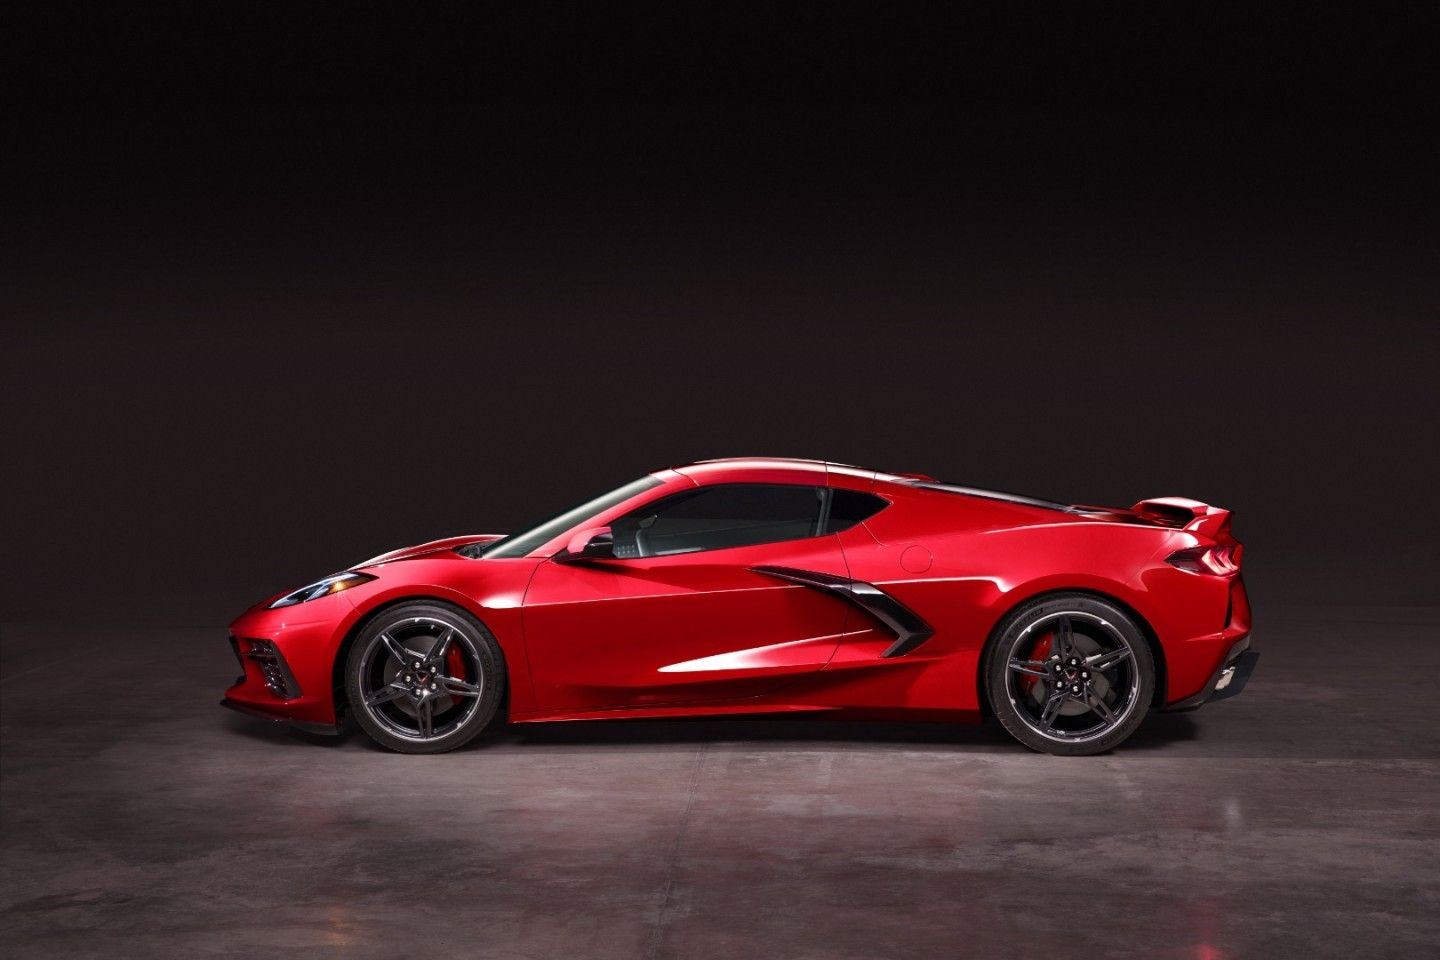 2020 Stingray Revealed As First Ever Mid Engine Corvette Chevrolet Corvette Stingray Chevrolet Corvette Corvette Stingray